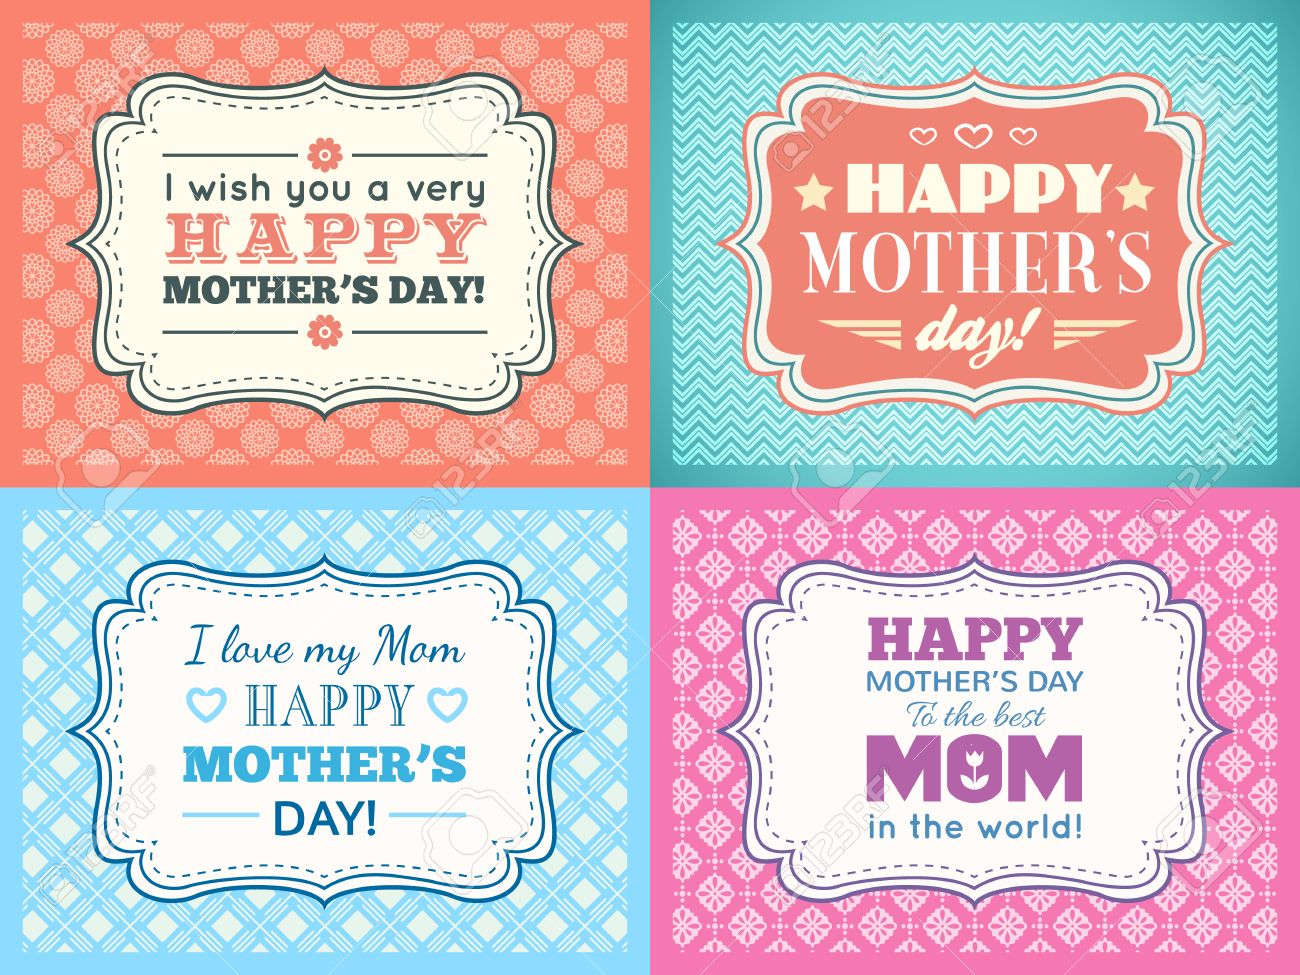 editable invitation images stock pictures royalty editable editable invitation happy mothers day card set typography letter font type editable for